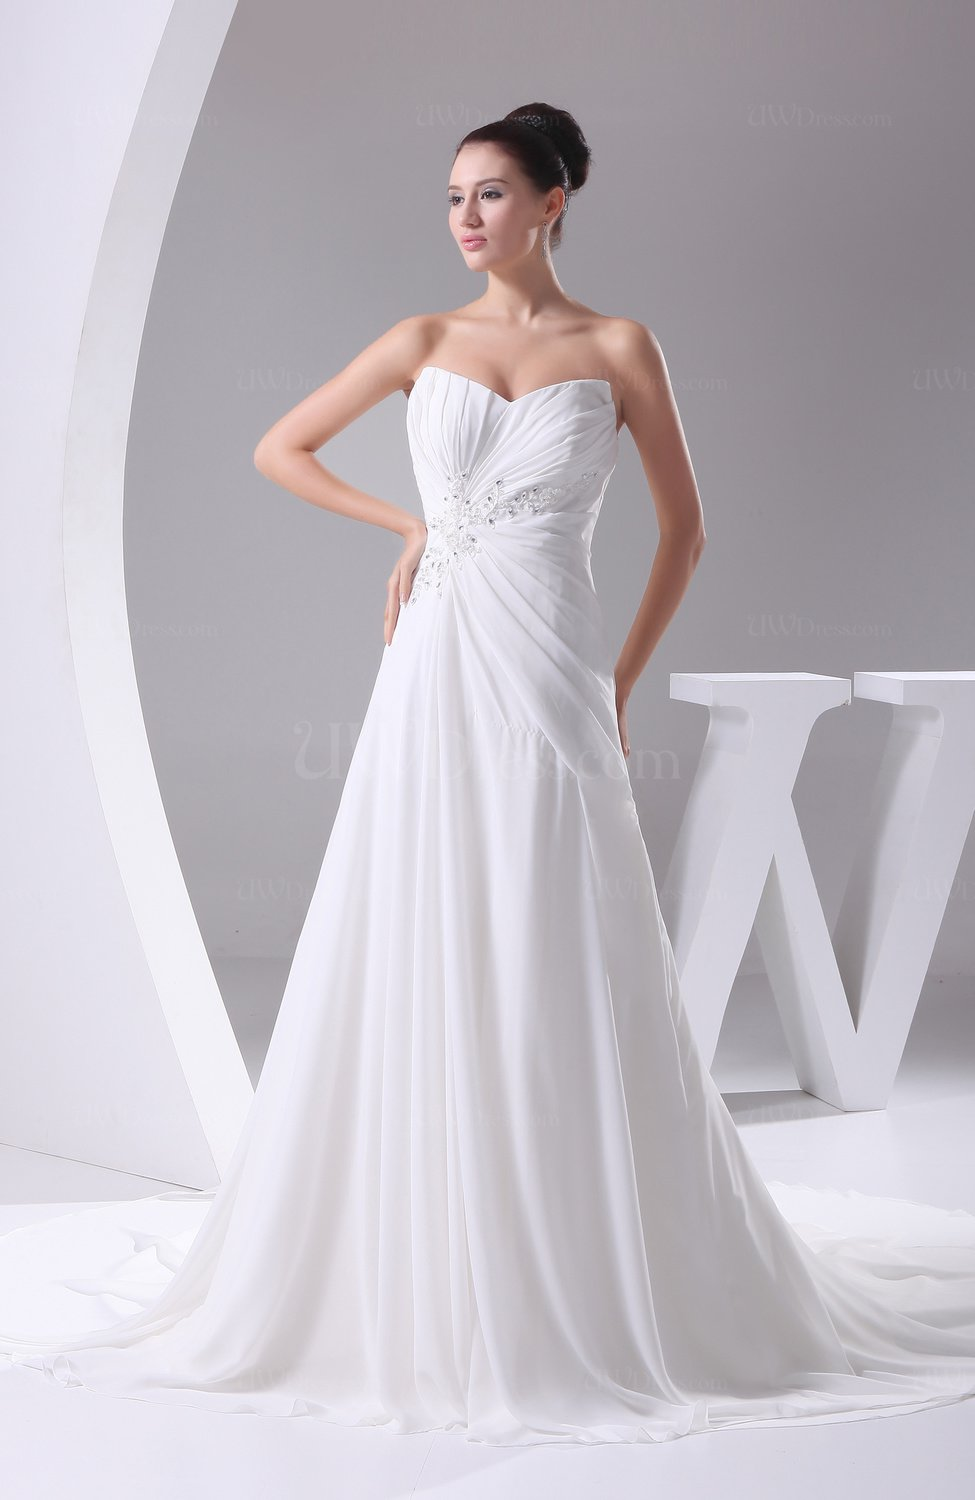 White Elegant Hall A-line Sweetheart Sleeveless Chiffon ...